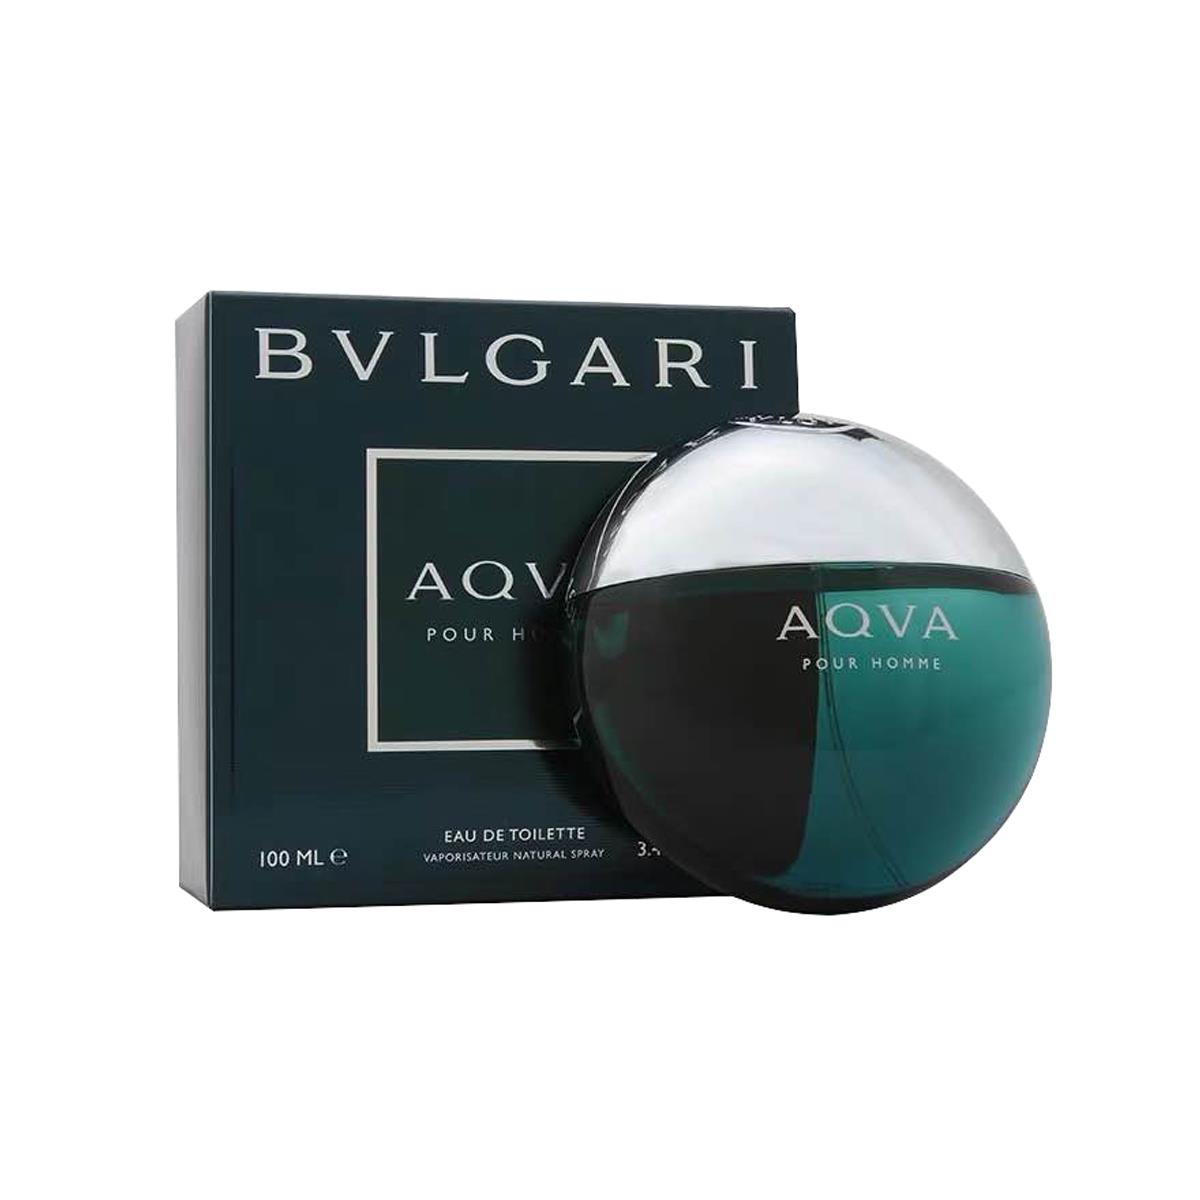 nuoc-hoa-nam-bvlgari-aqva-pour-homme-edt-100ml-chinh-hang-y